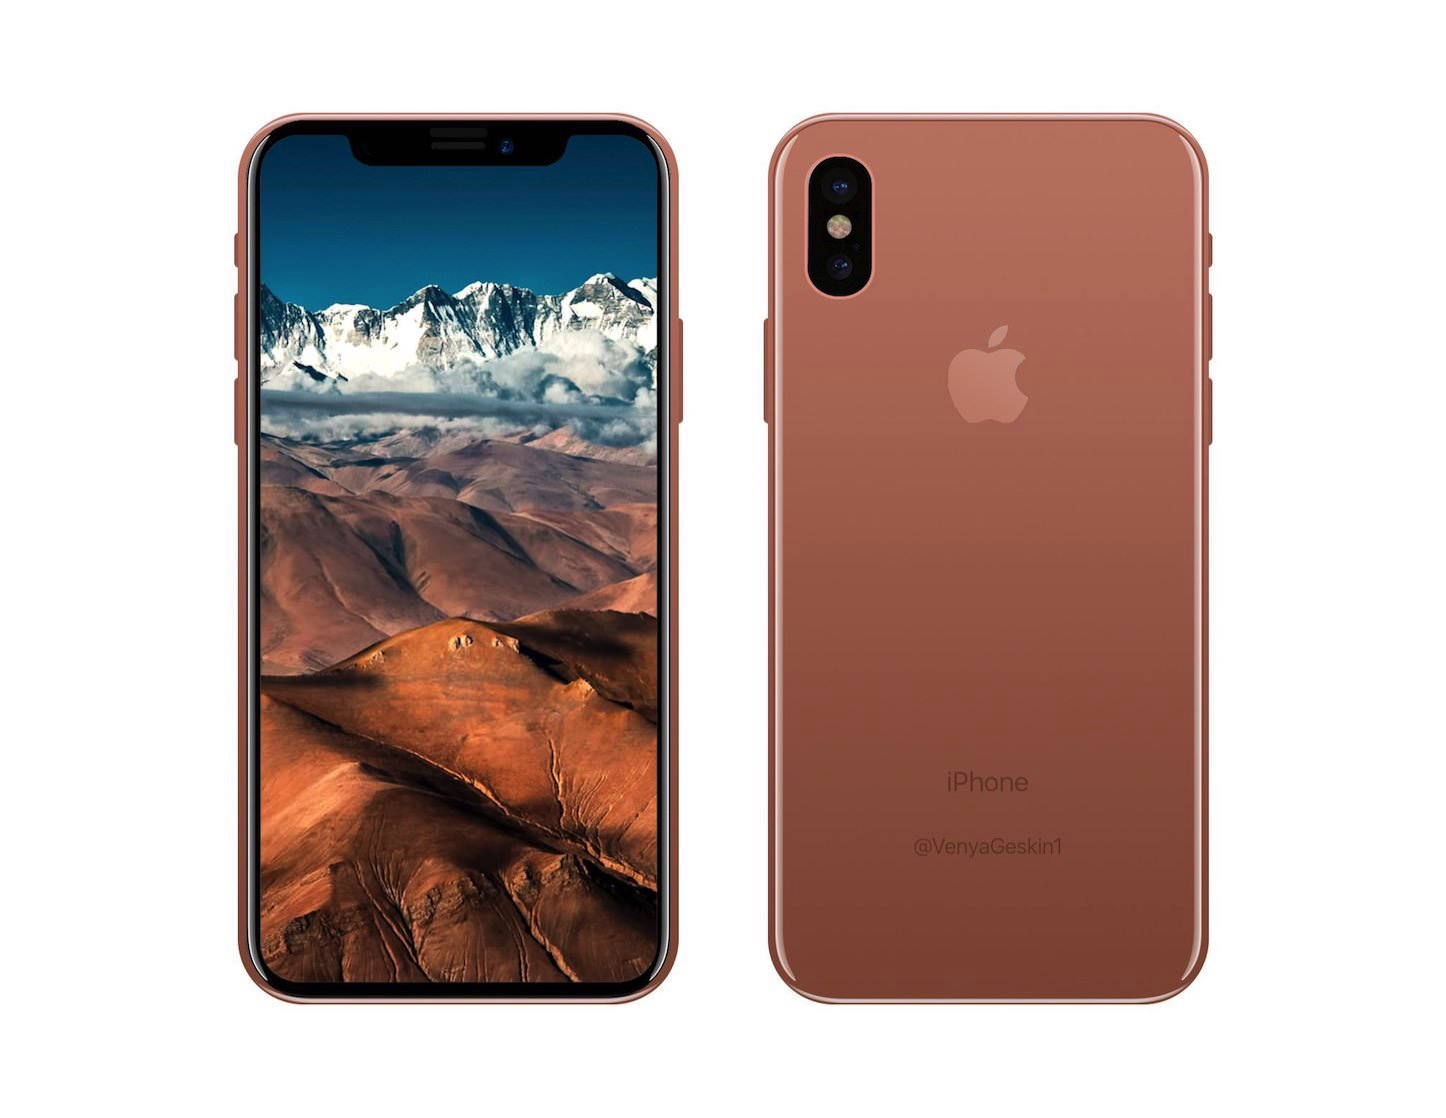 Copper gold iphone 8 pro